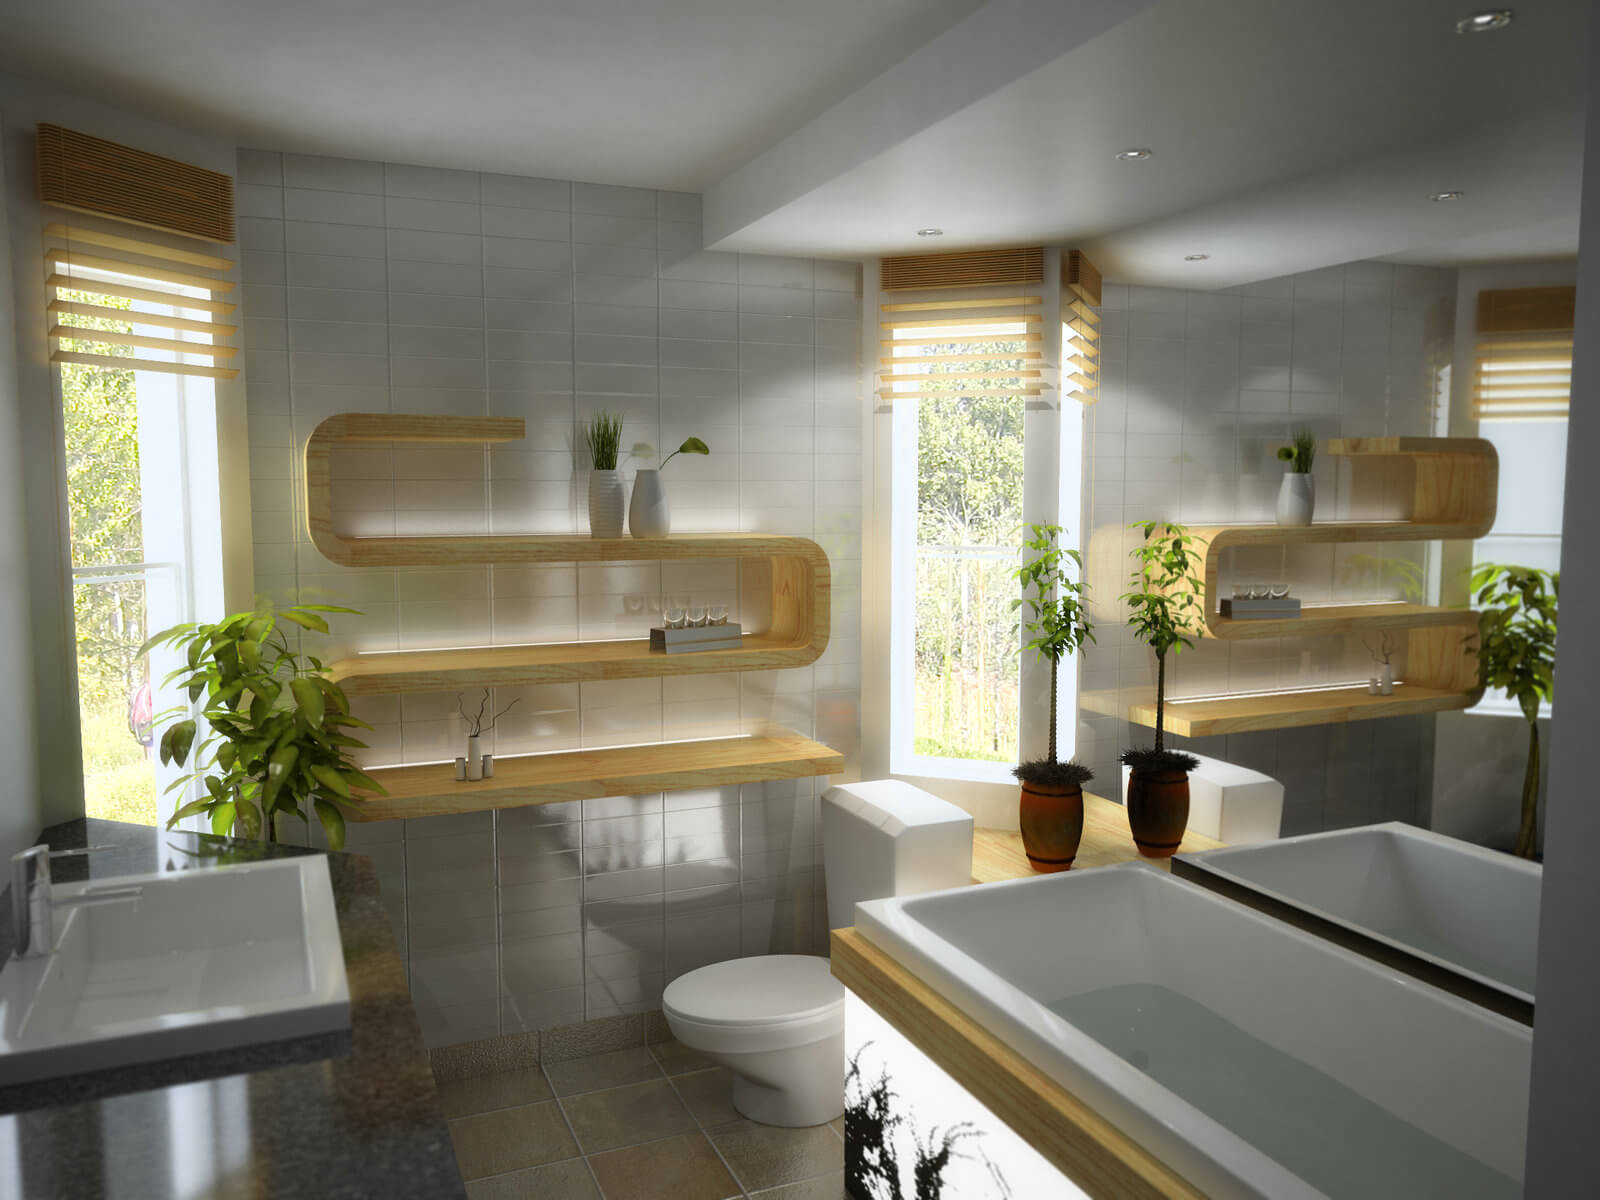 20 Examples of Innovative Bathroom Designs – Interior Design